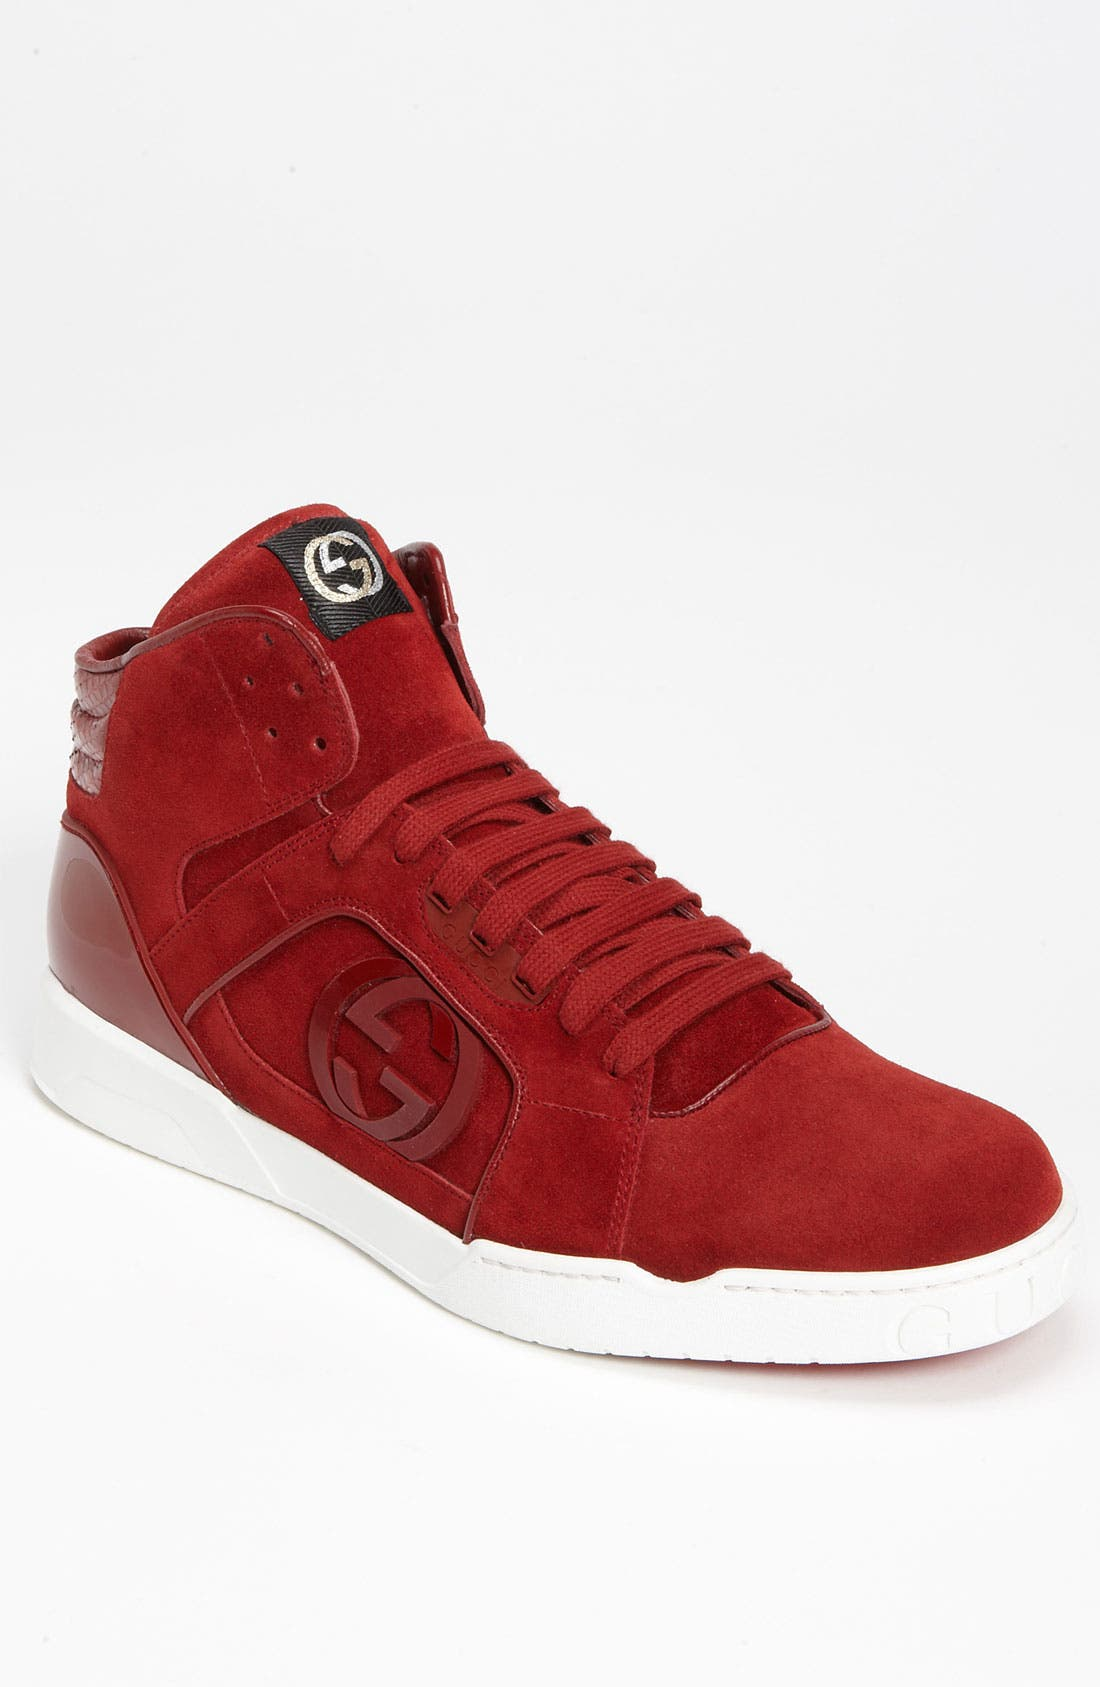 Alternate Image 1 Selected - Gucci 'Rebound' High Top Sneaker